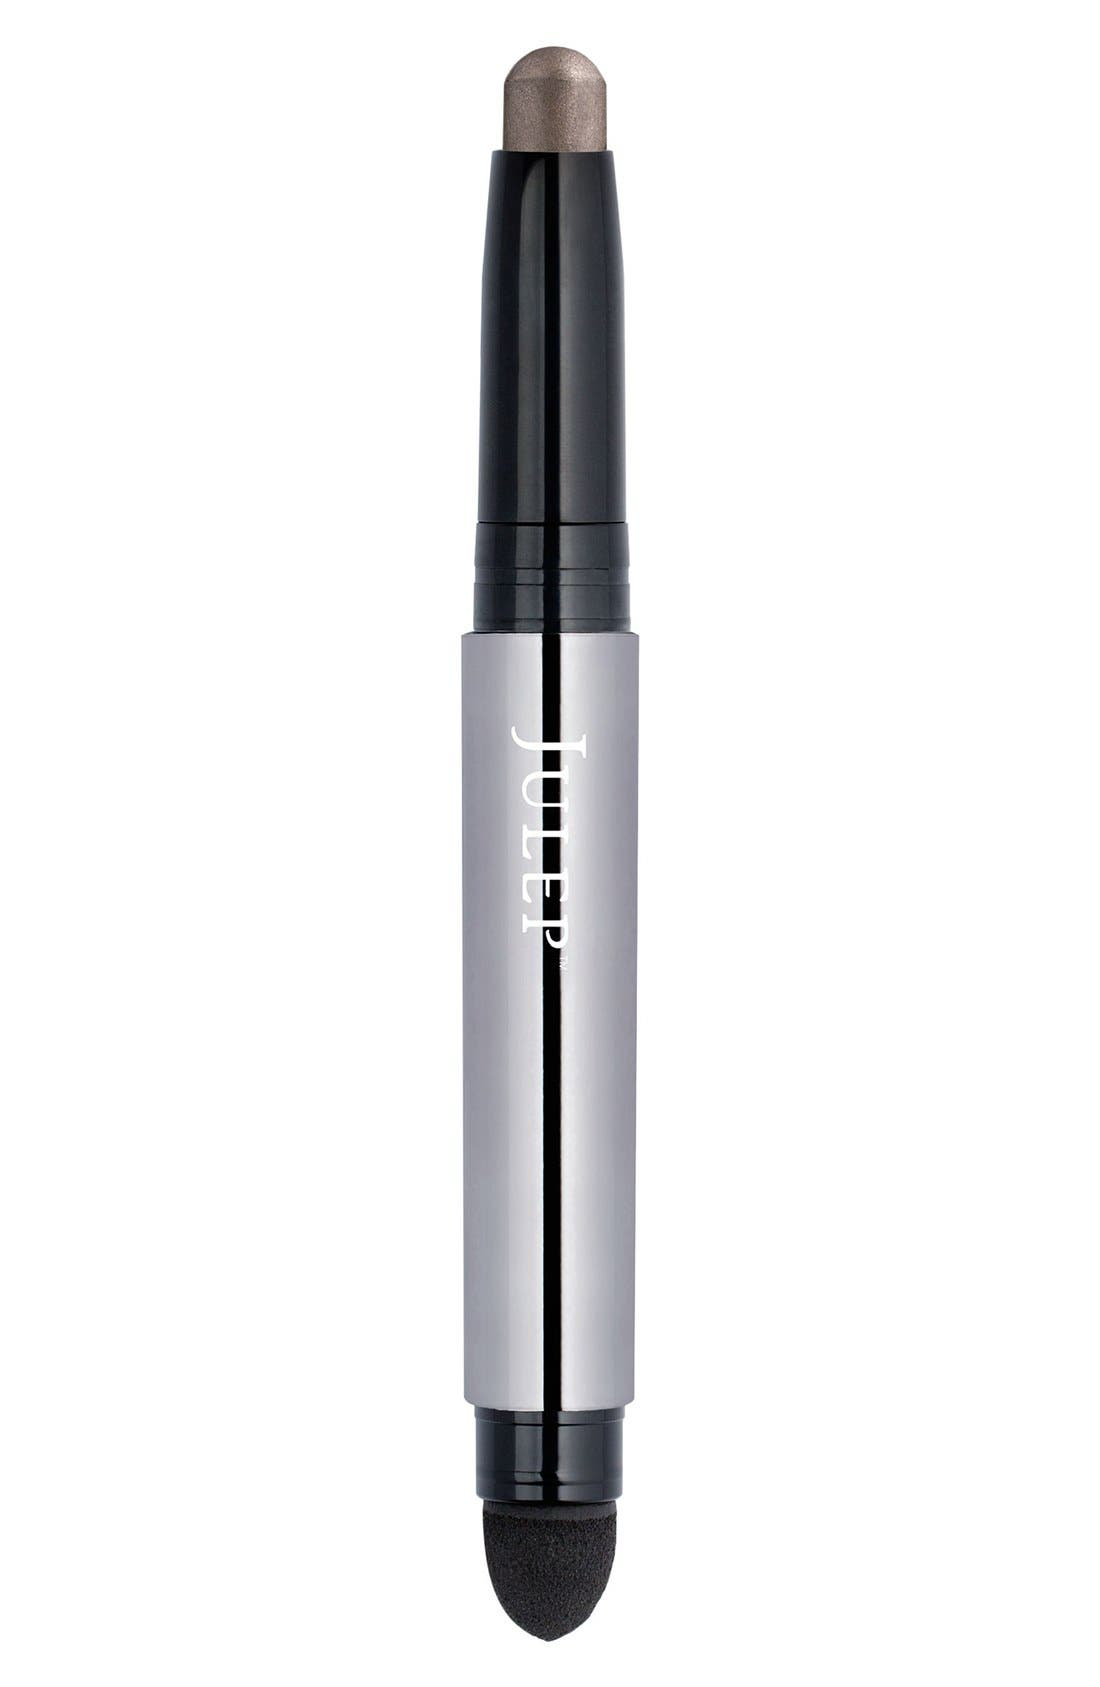 Julep<sup>™</sup> Eyeshadow 101 Eyeshadow Stick,                             Main thumbnail 1, color,                             TAUPE SHIMMER